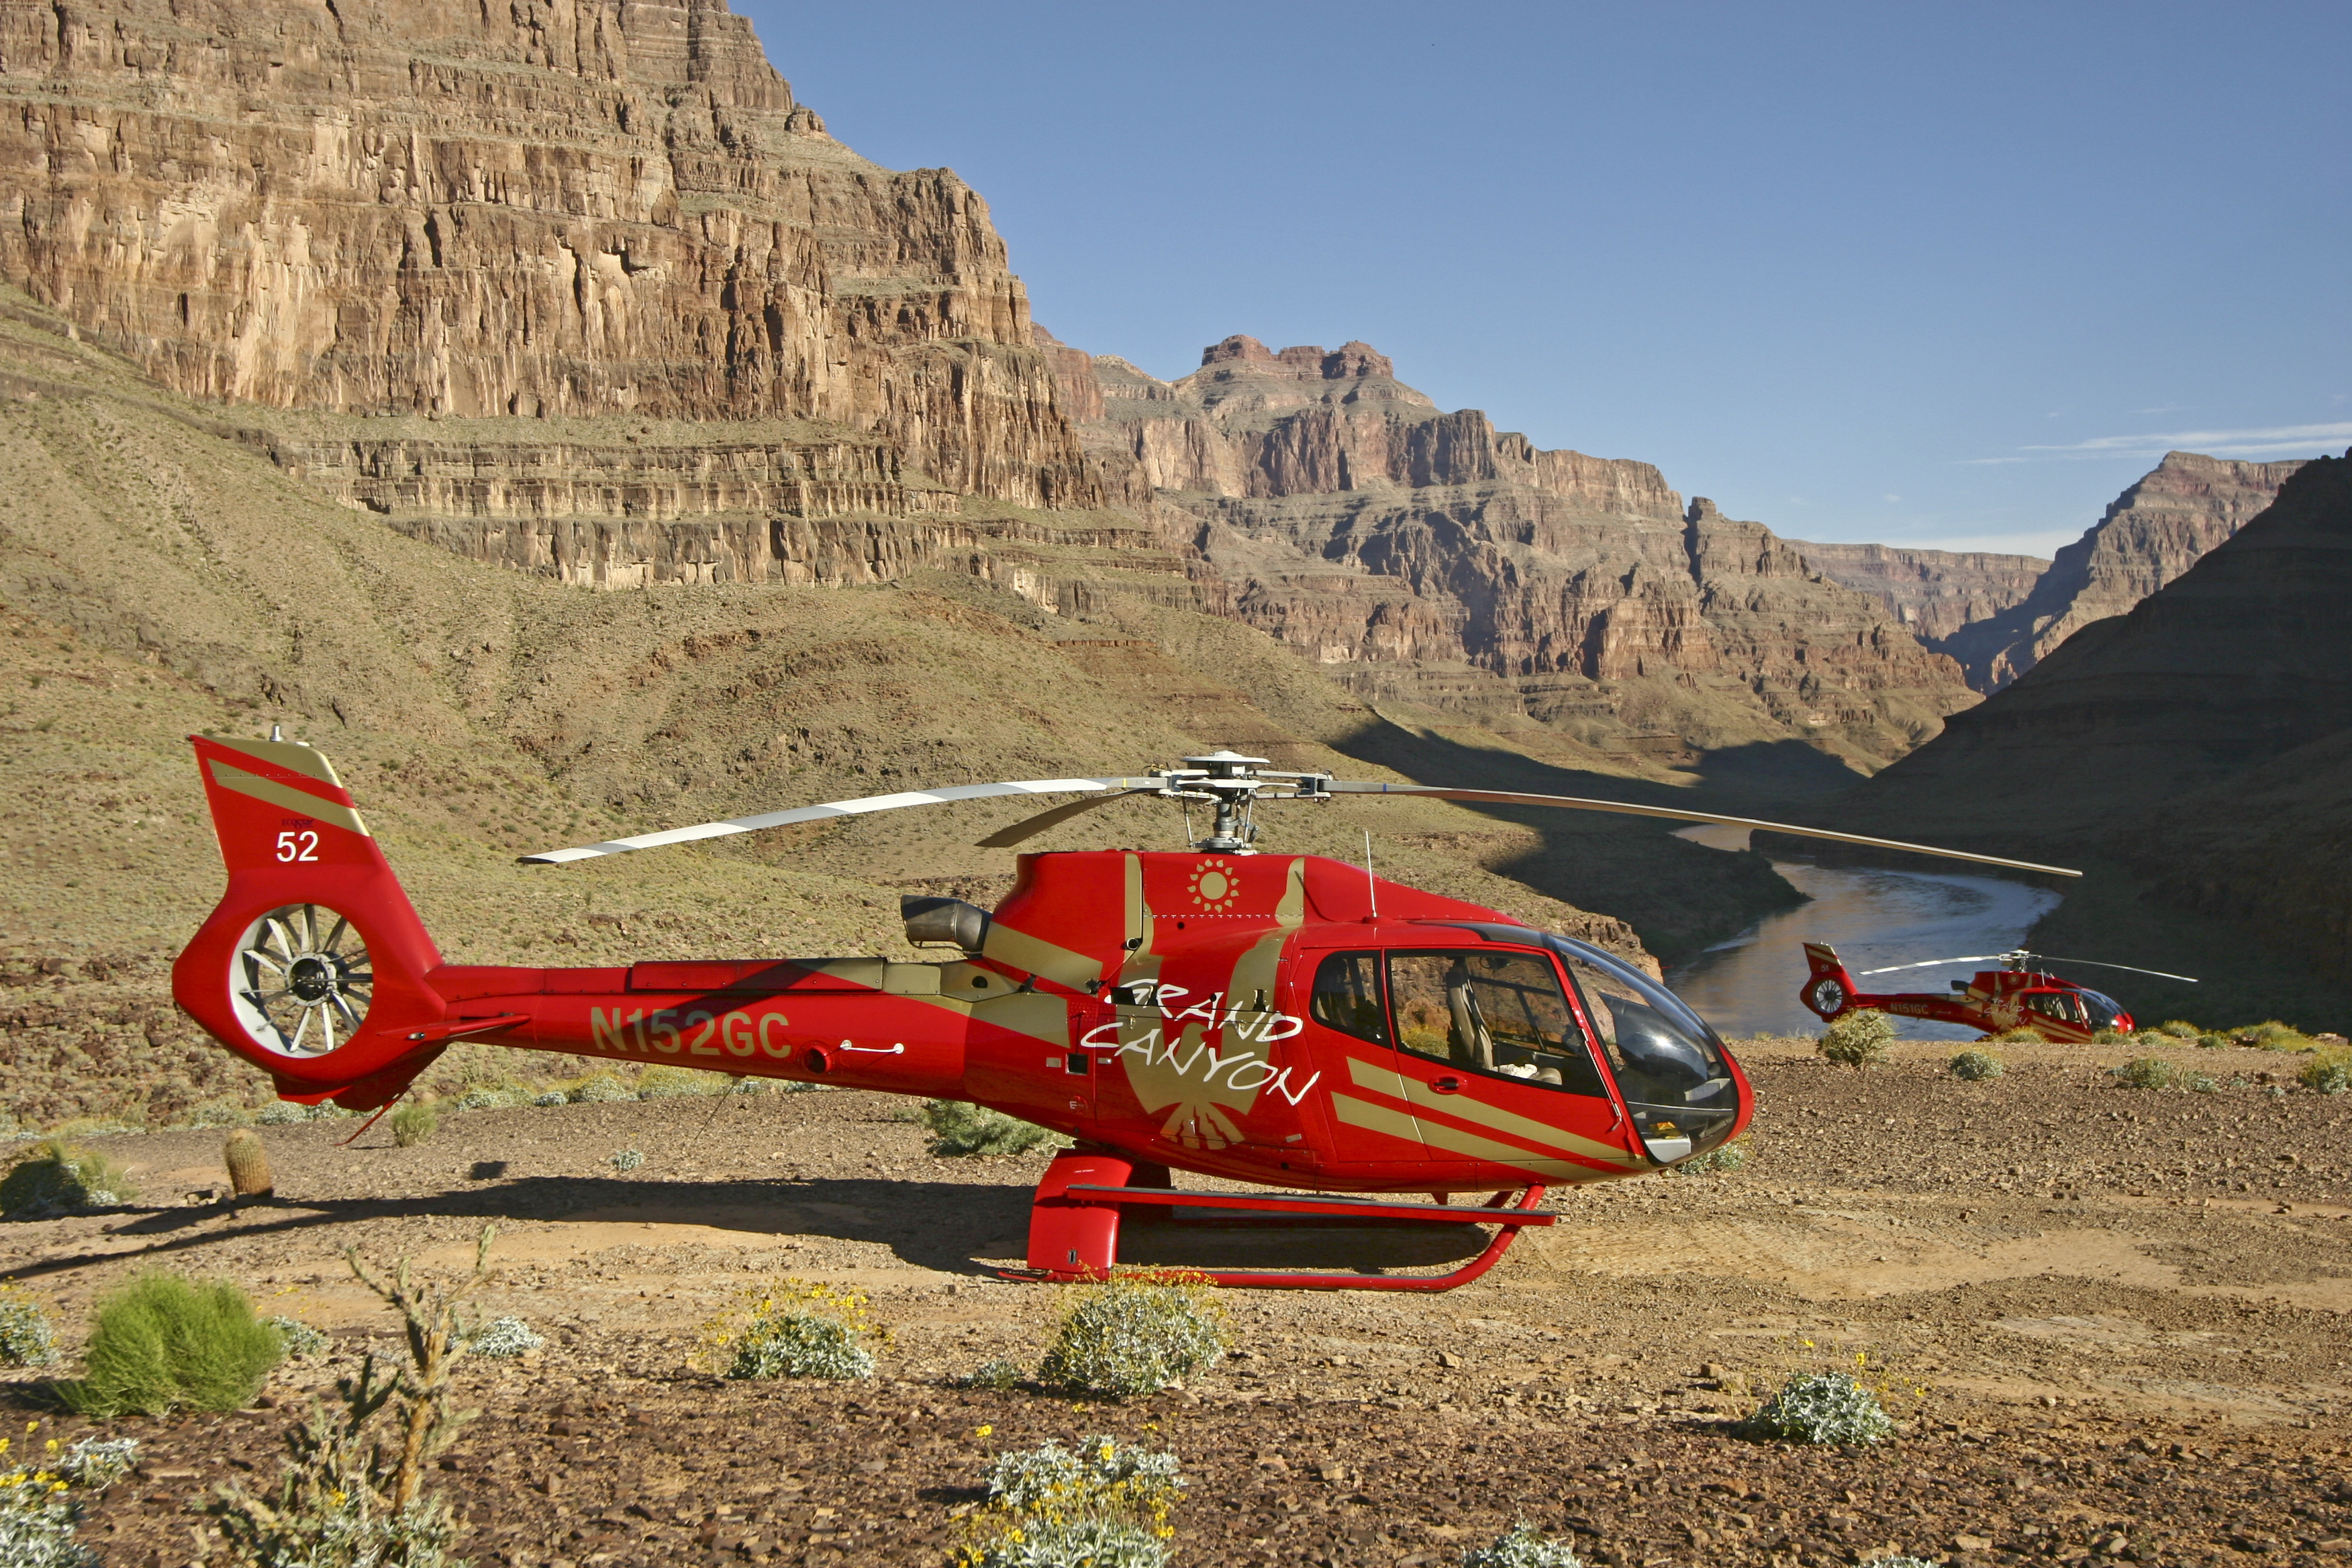 rainbow air helicopter tours with Helico Grand Canyon Voler Papillon Promos on Niesamowite Zdjecia Gor besides Valley Of Fire furthermore Fairmont Orchid as well Los Angeles Shore Excursion Vip Grand Helicopter Tour 21811 likewise World Class Gl ing At The Resort At Paws Up.